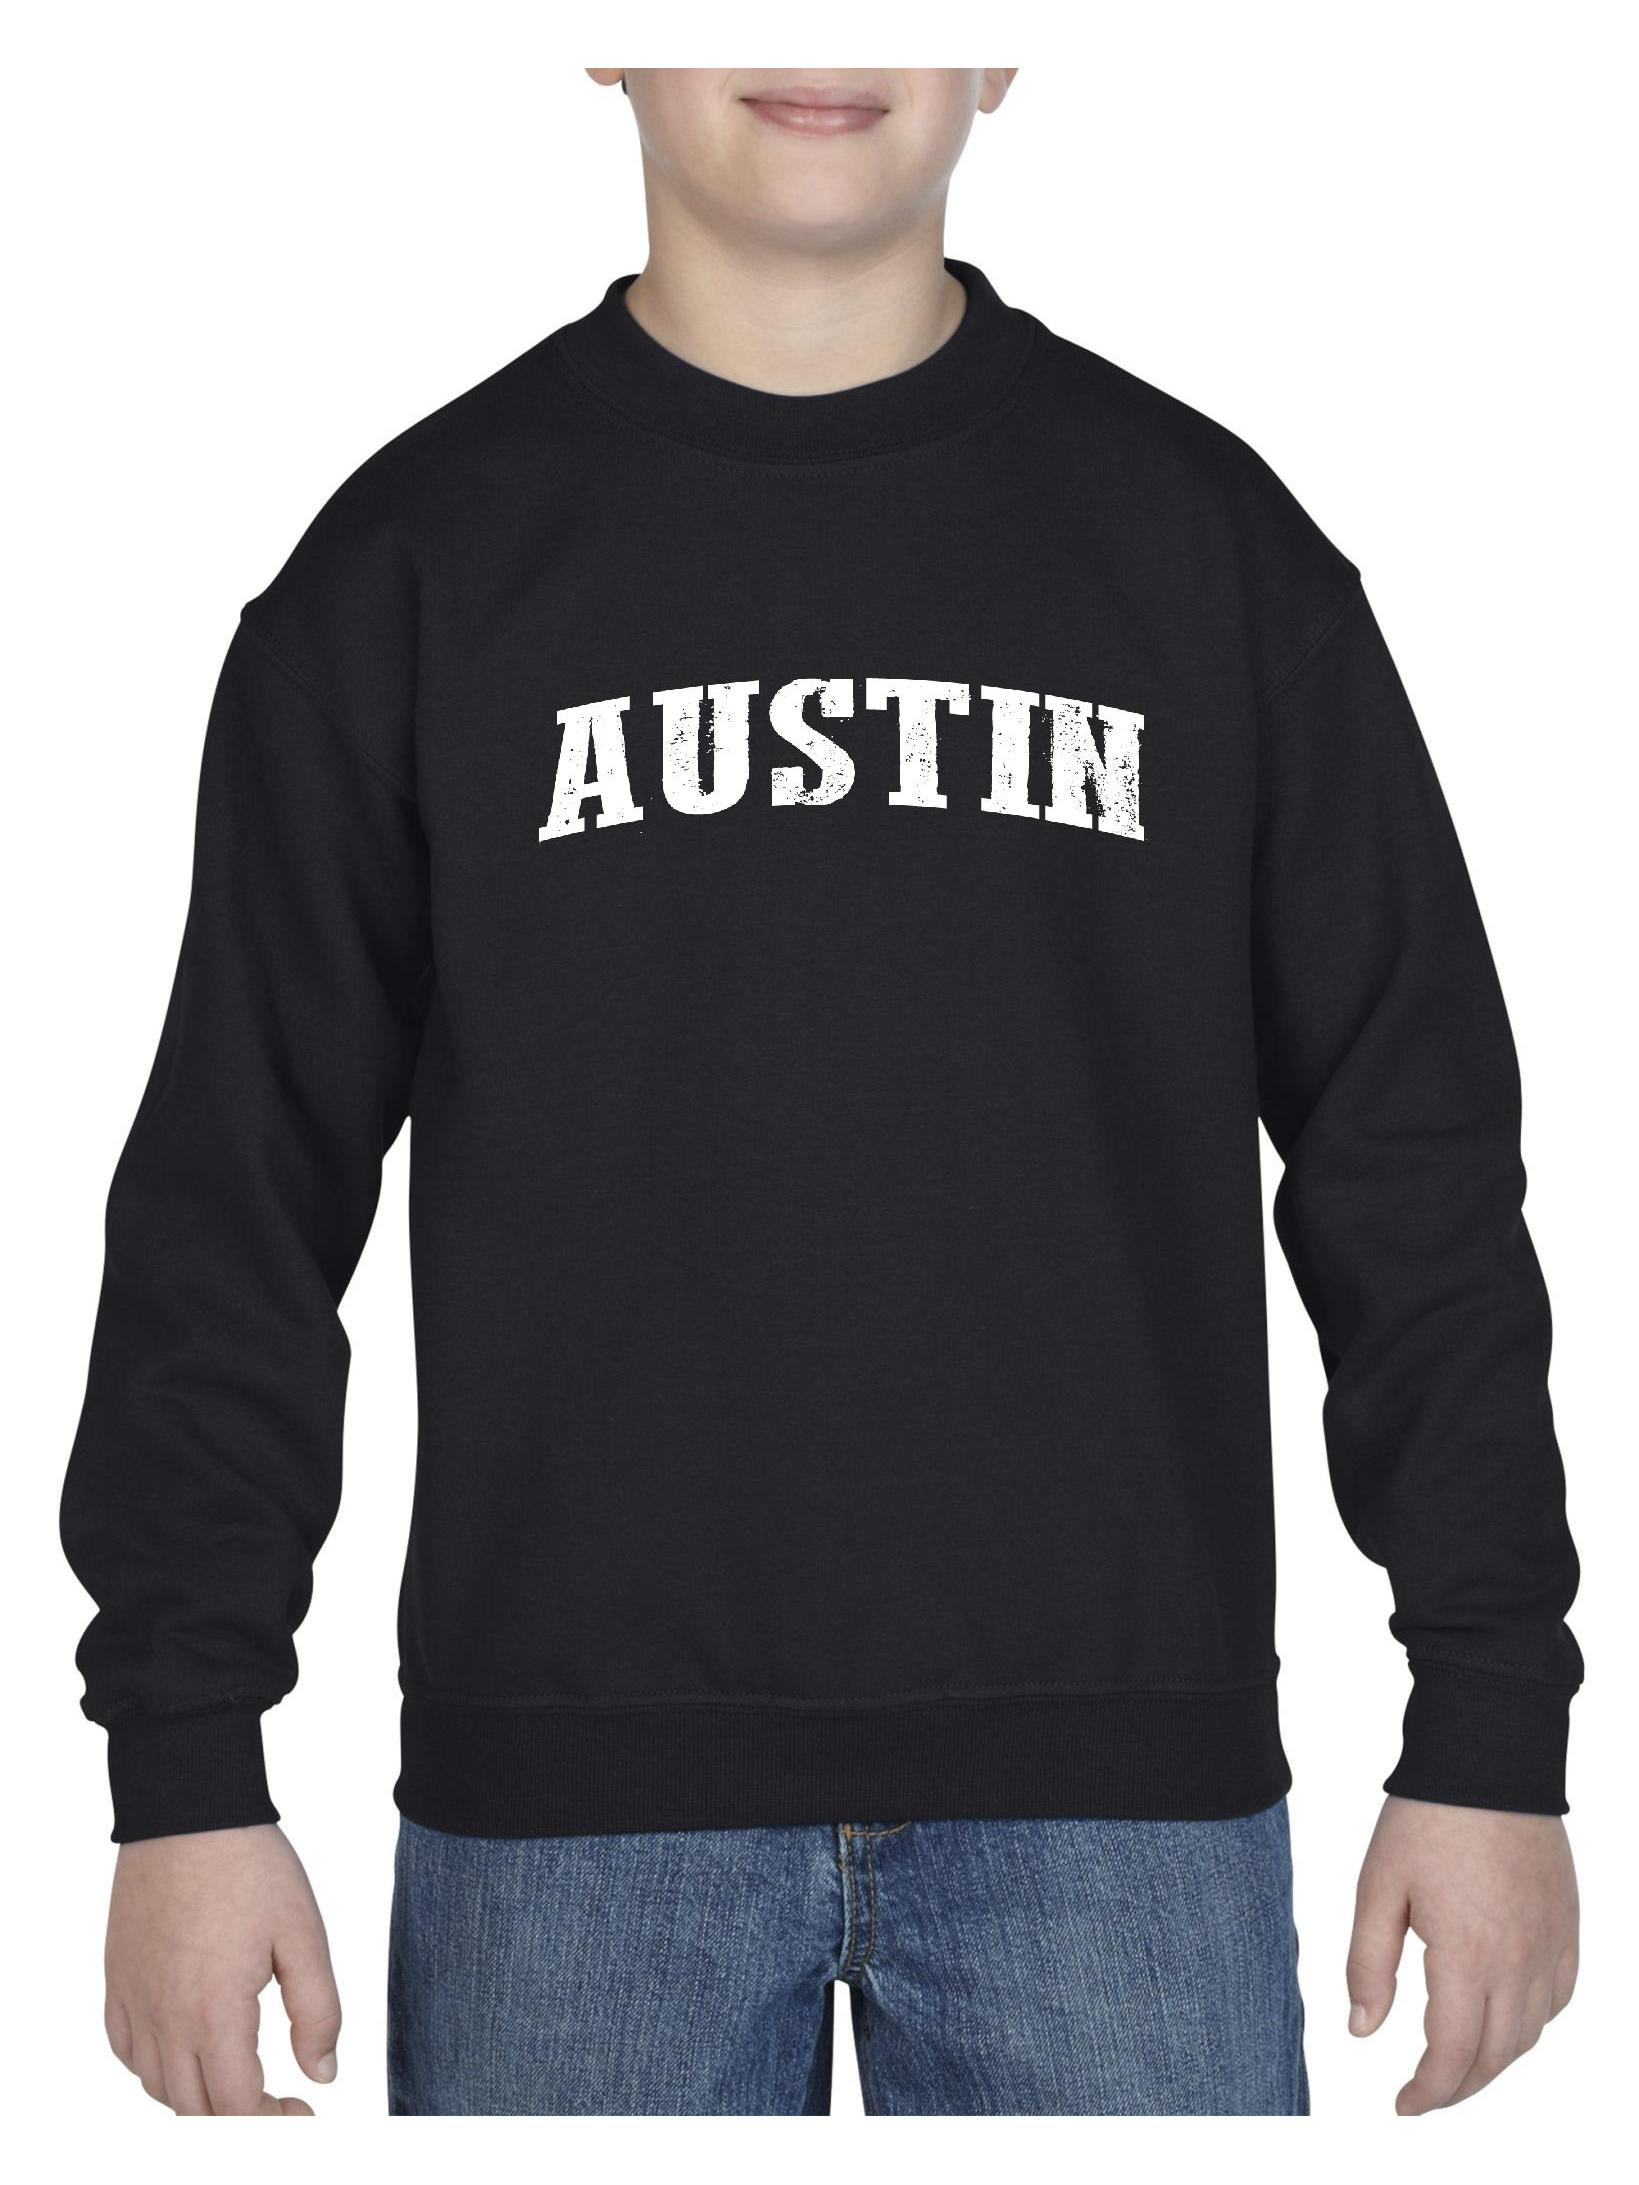 Texas Austin Unisex Youth Crewneck Sweatshirt